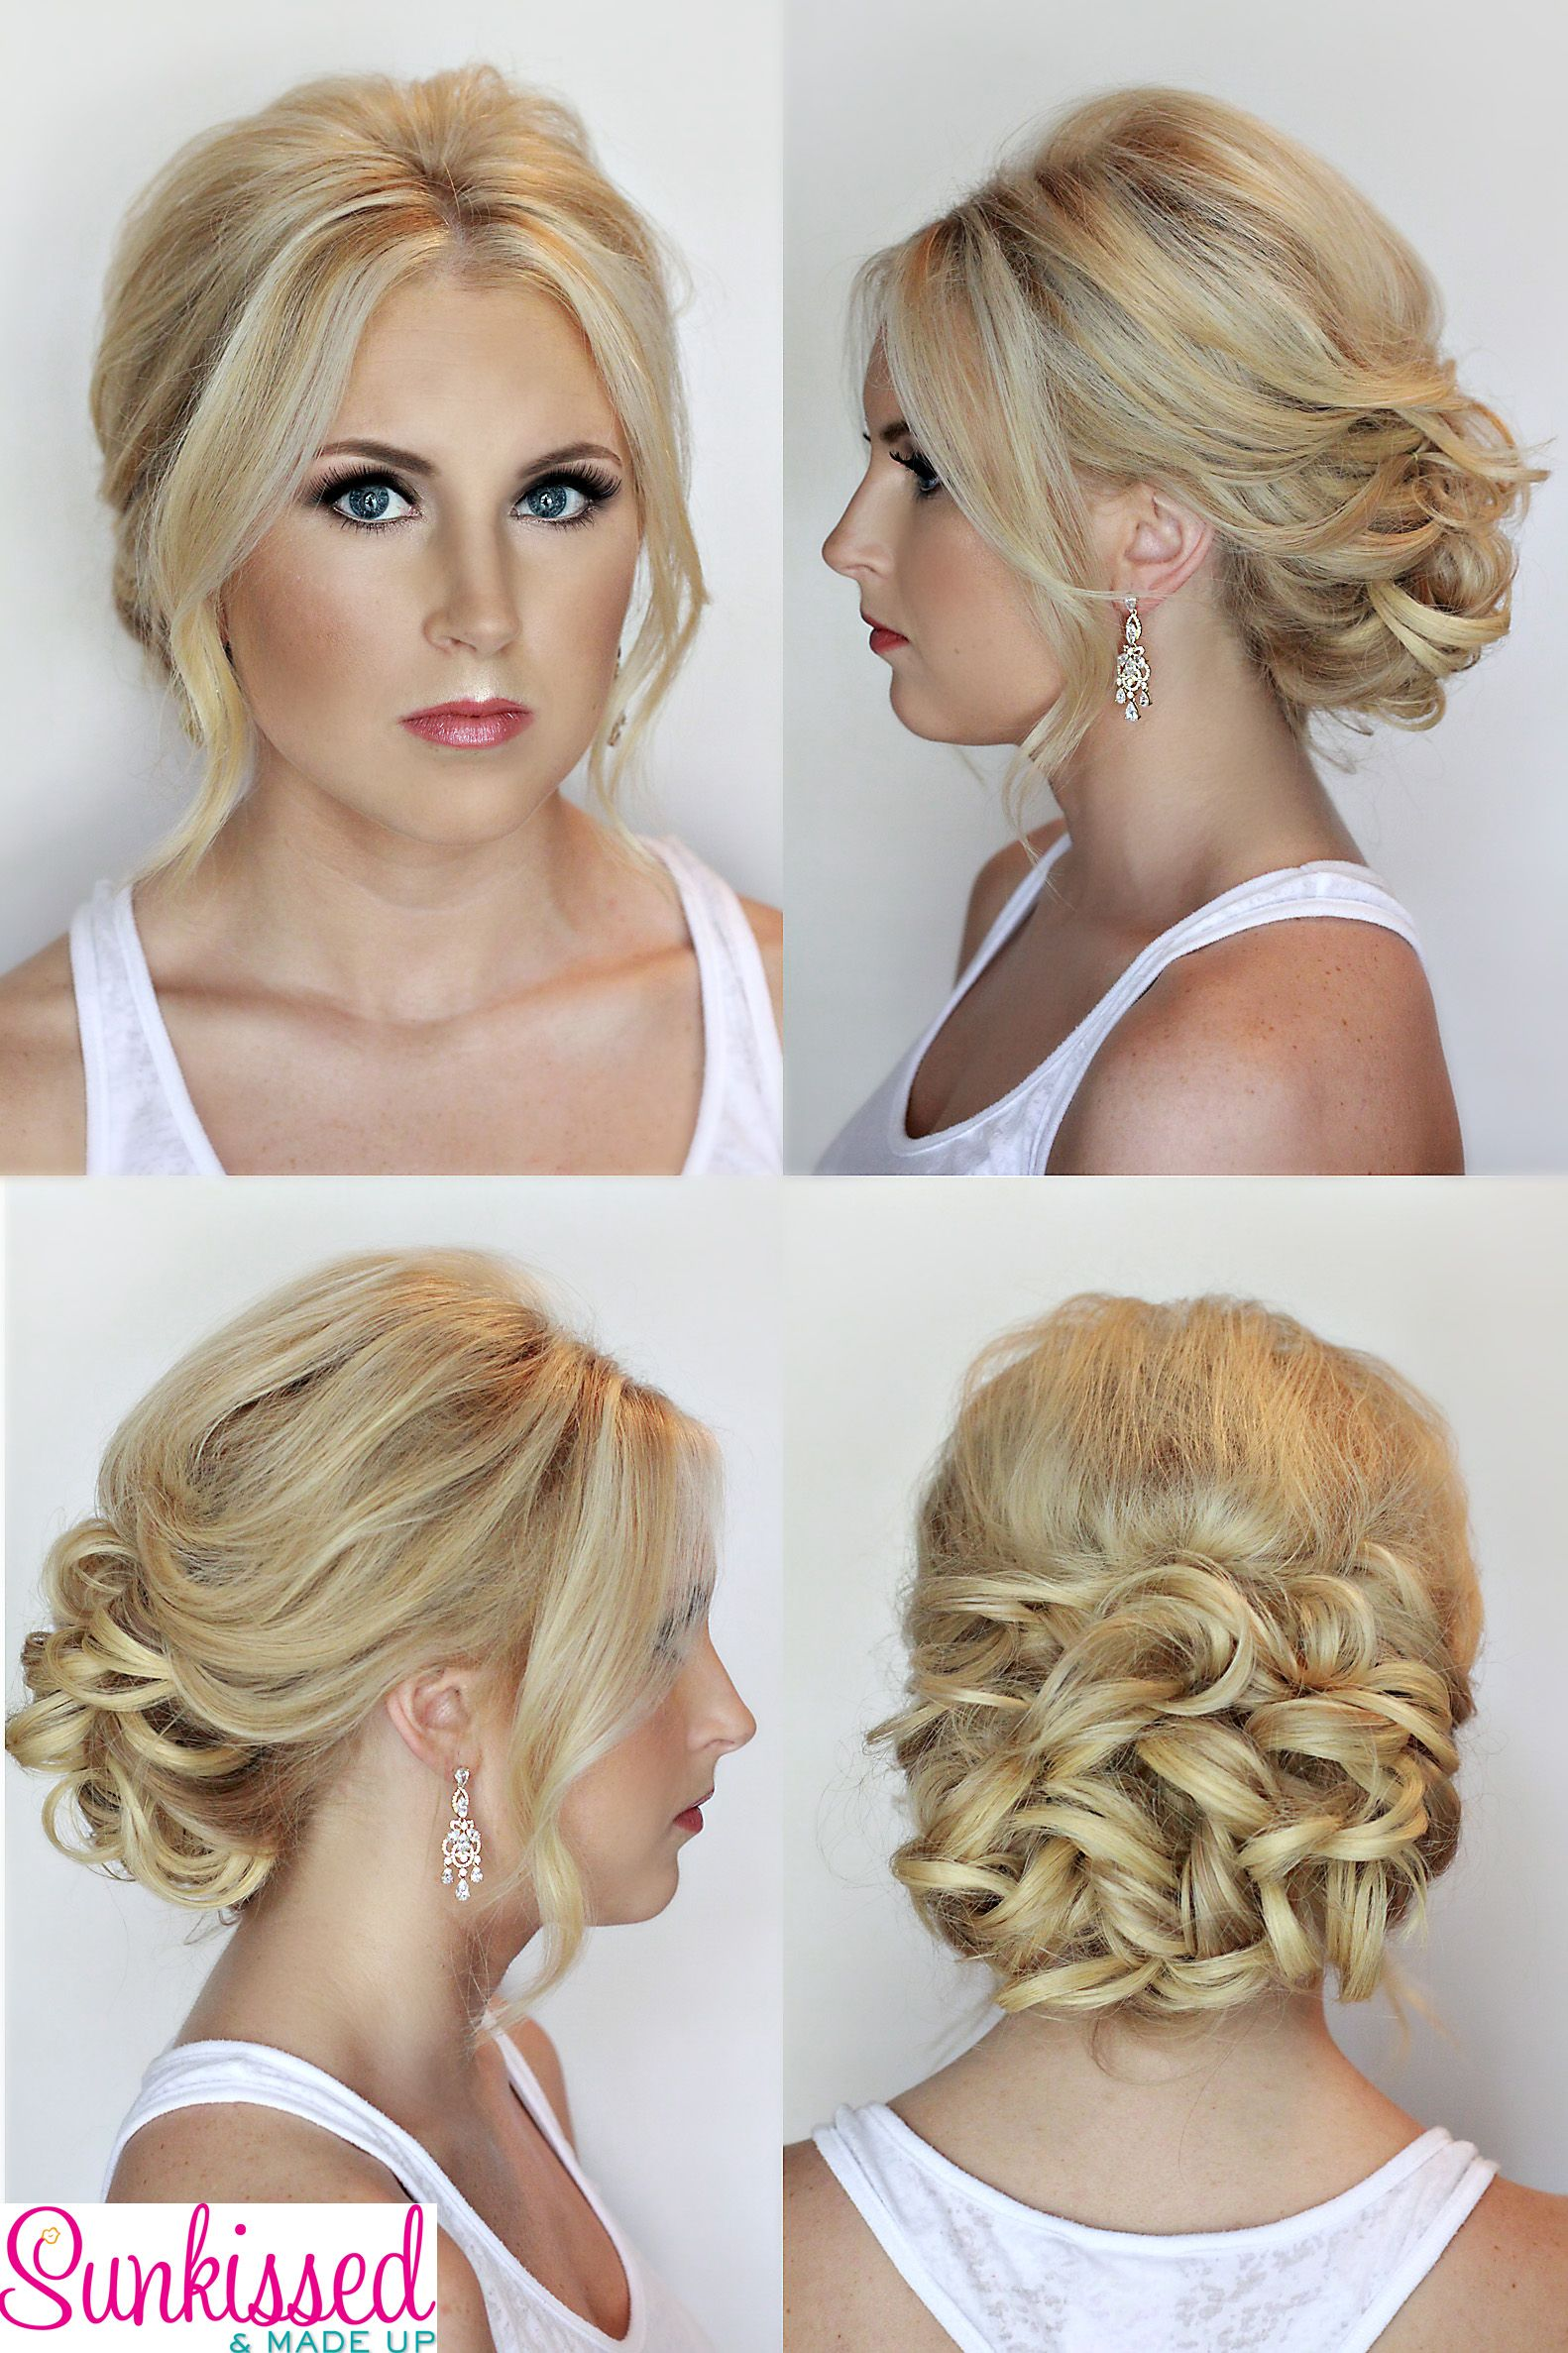 bridal hair and makeup, updo, blonde. hair and makeup by sunkissed